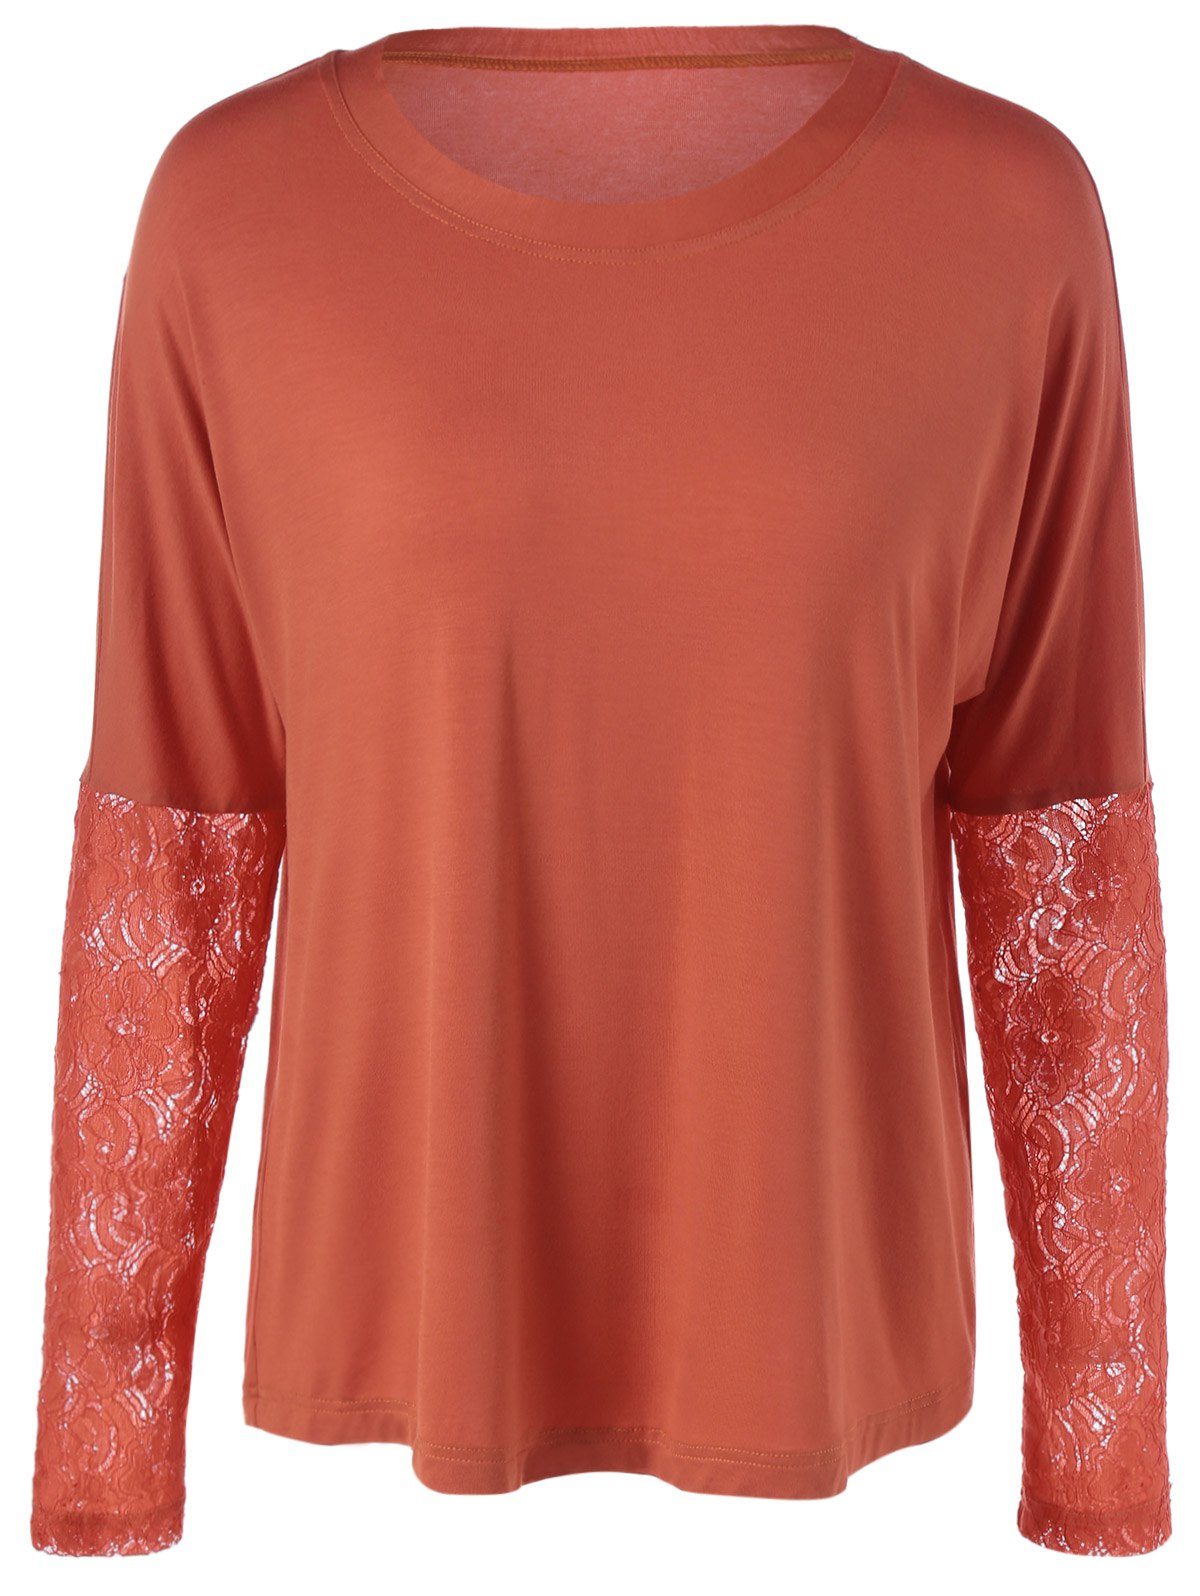 Solid Color Lace Patchwork T-Shirt - BRICK RED M